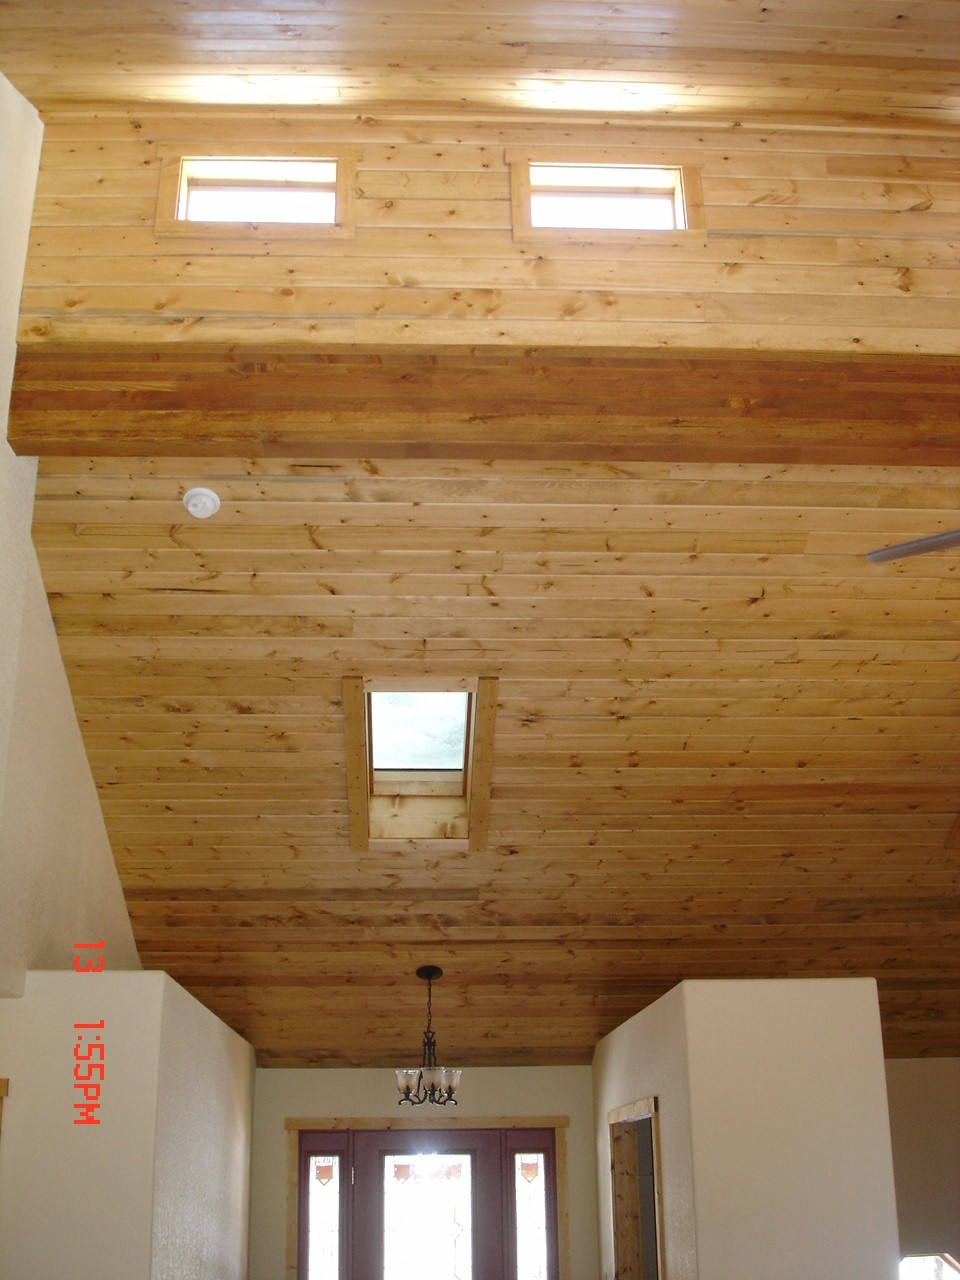 Spectacular clerestory ceiling!